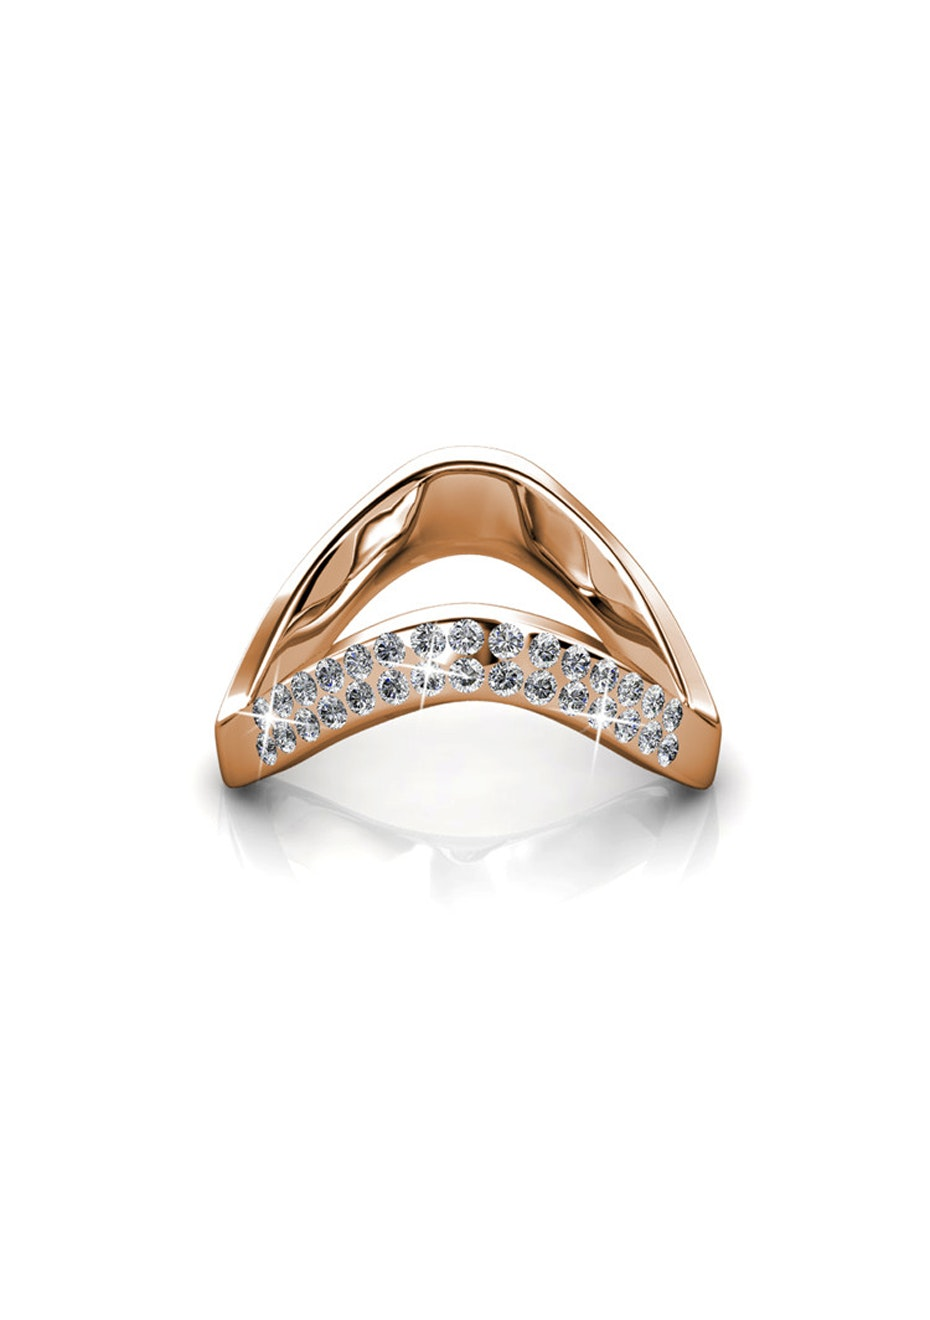 Bianca Rose Gold Ring Embellished with Crystals from Swarovski